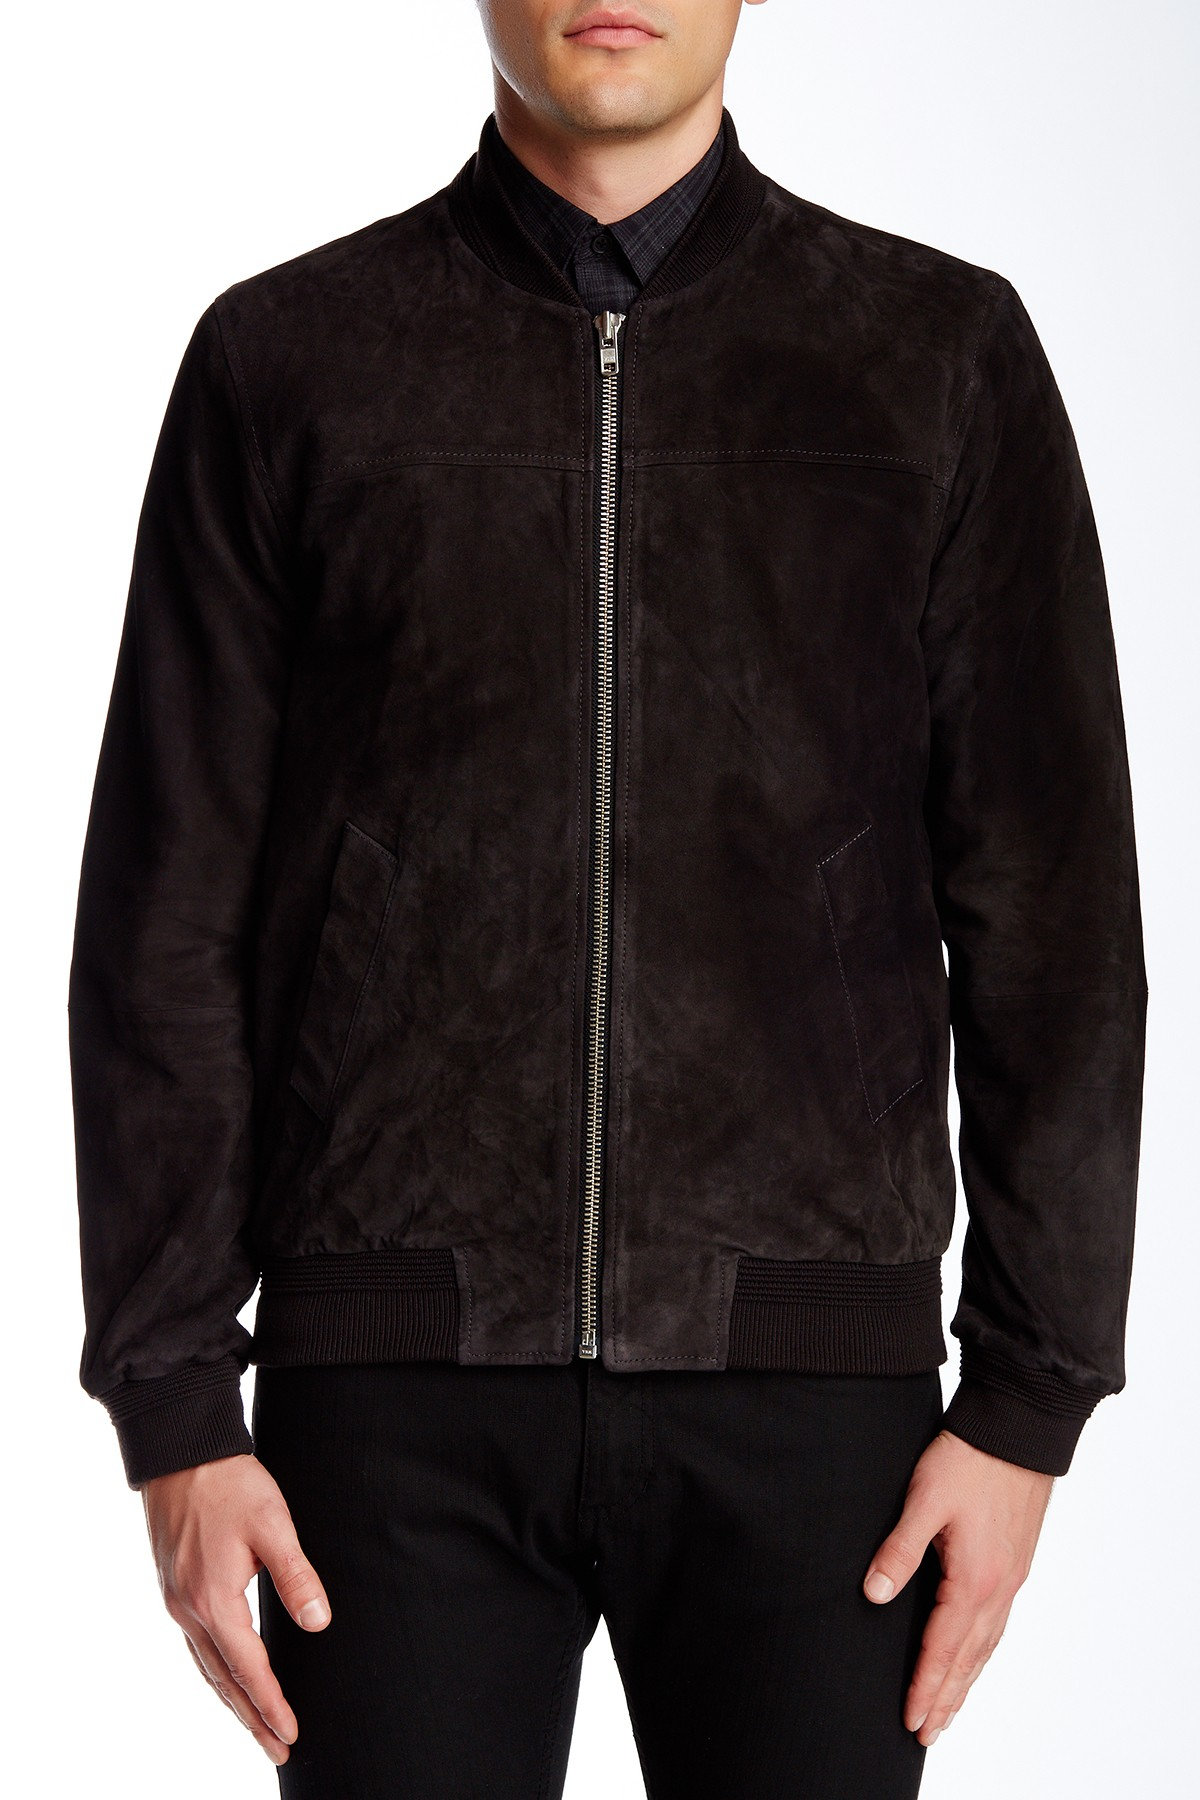 Slate And Stone Clothing : Slate stone suede coat in black for men lyst